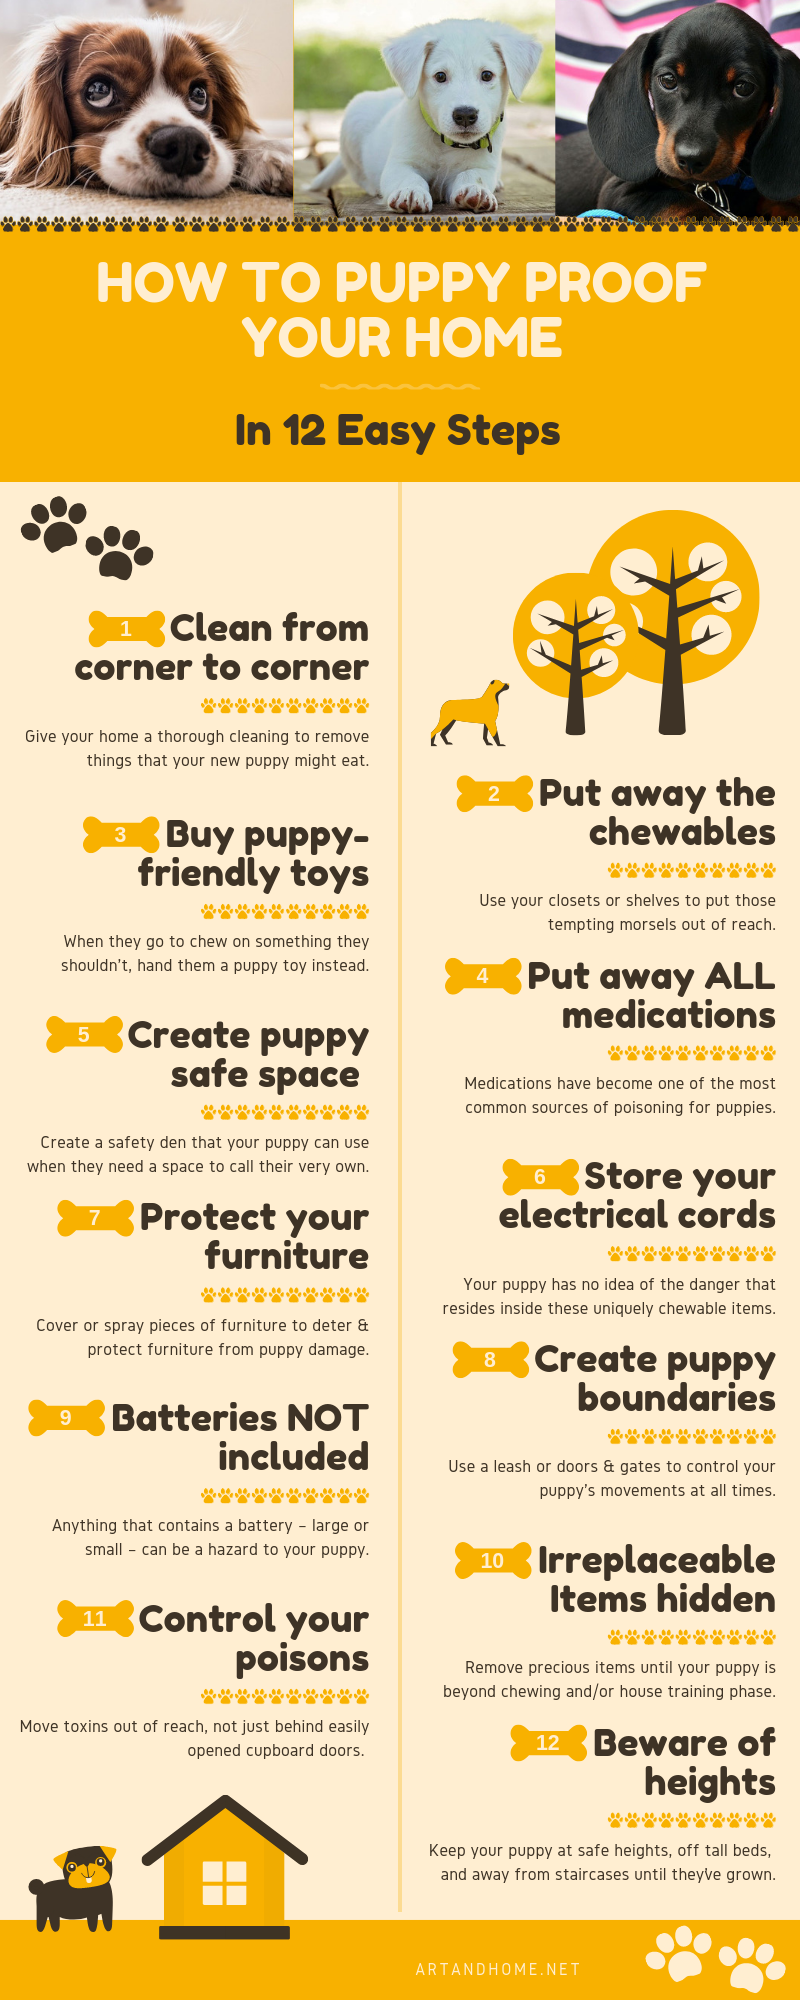 How to Puppy Proof Your Home in 12 Easy Steps